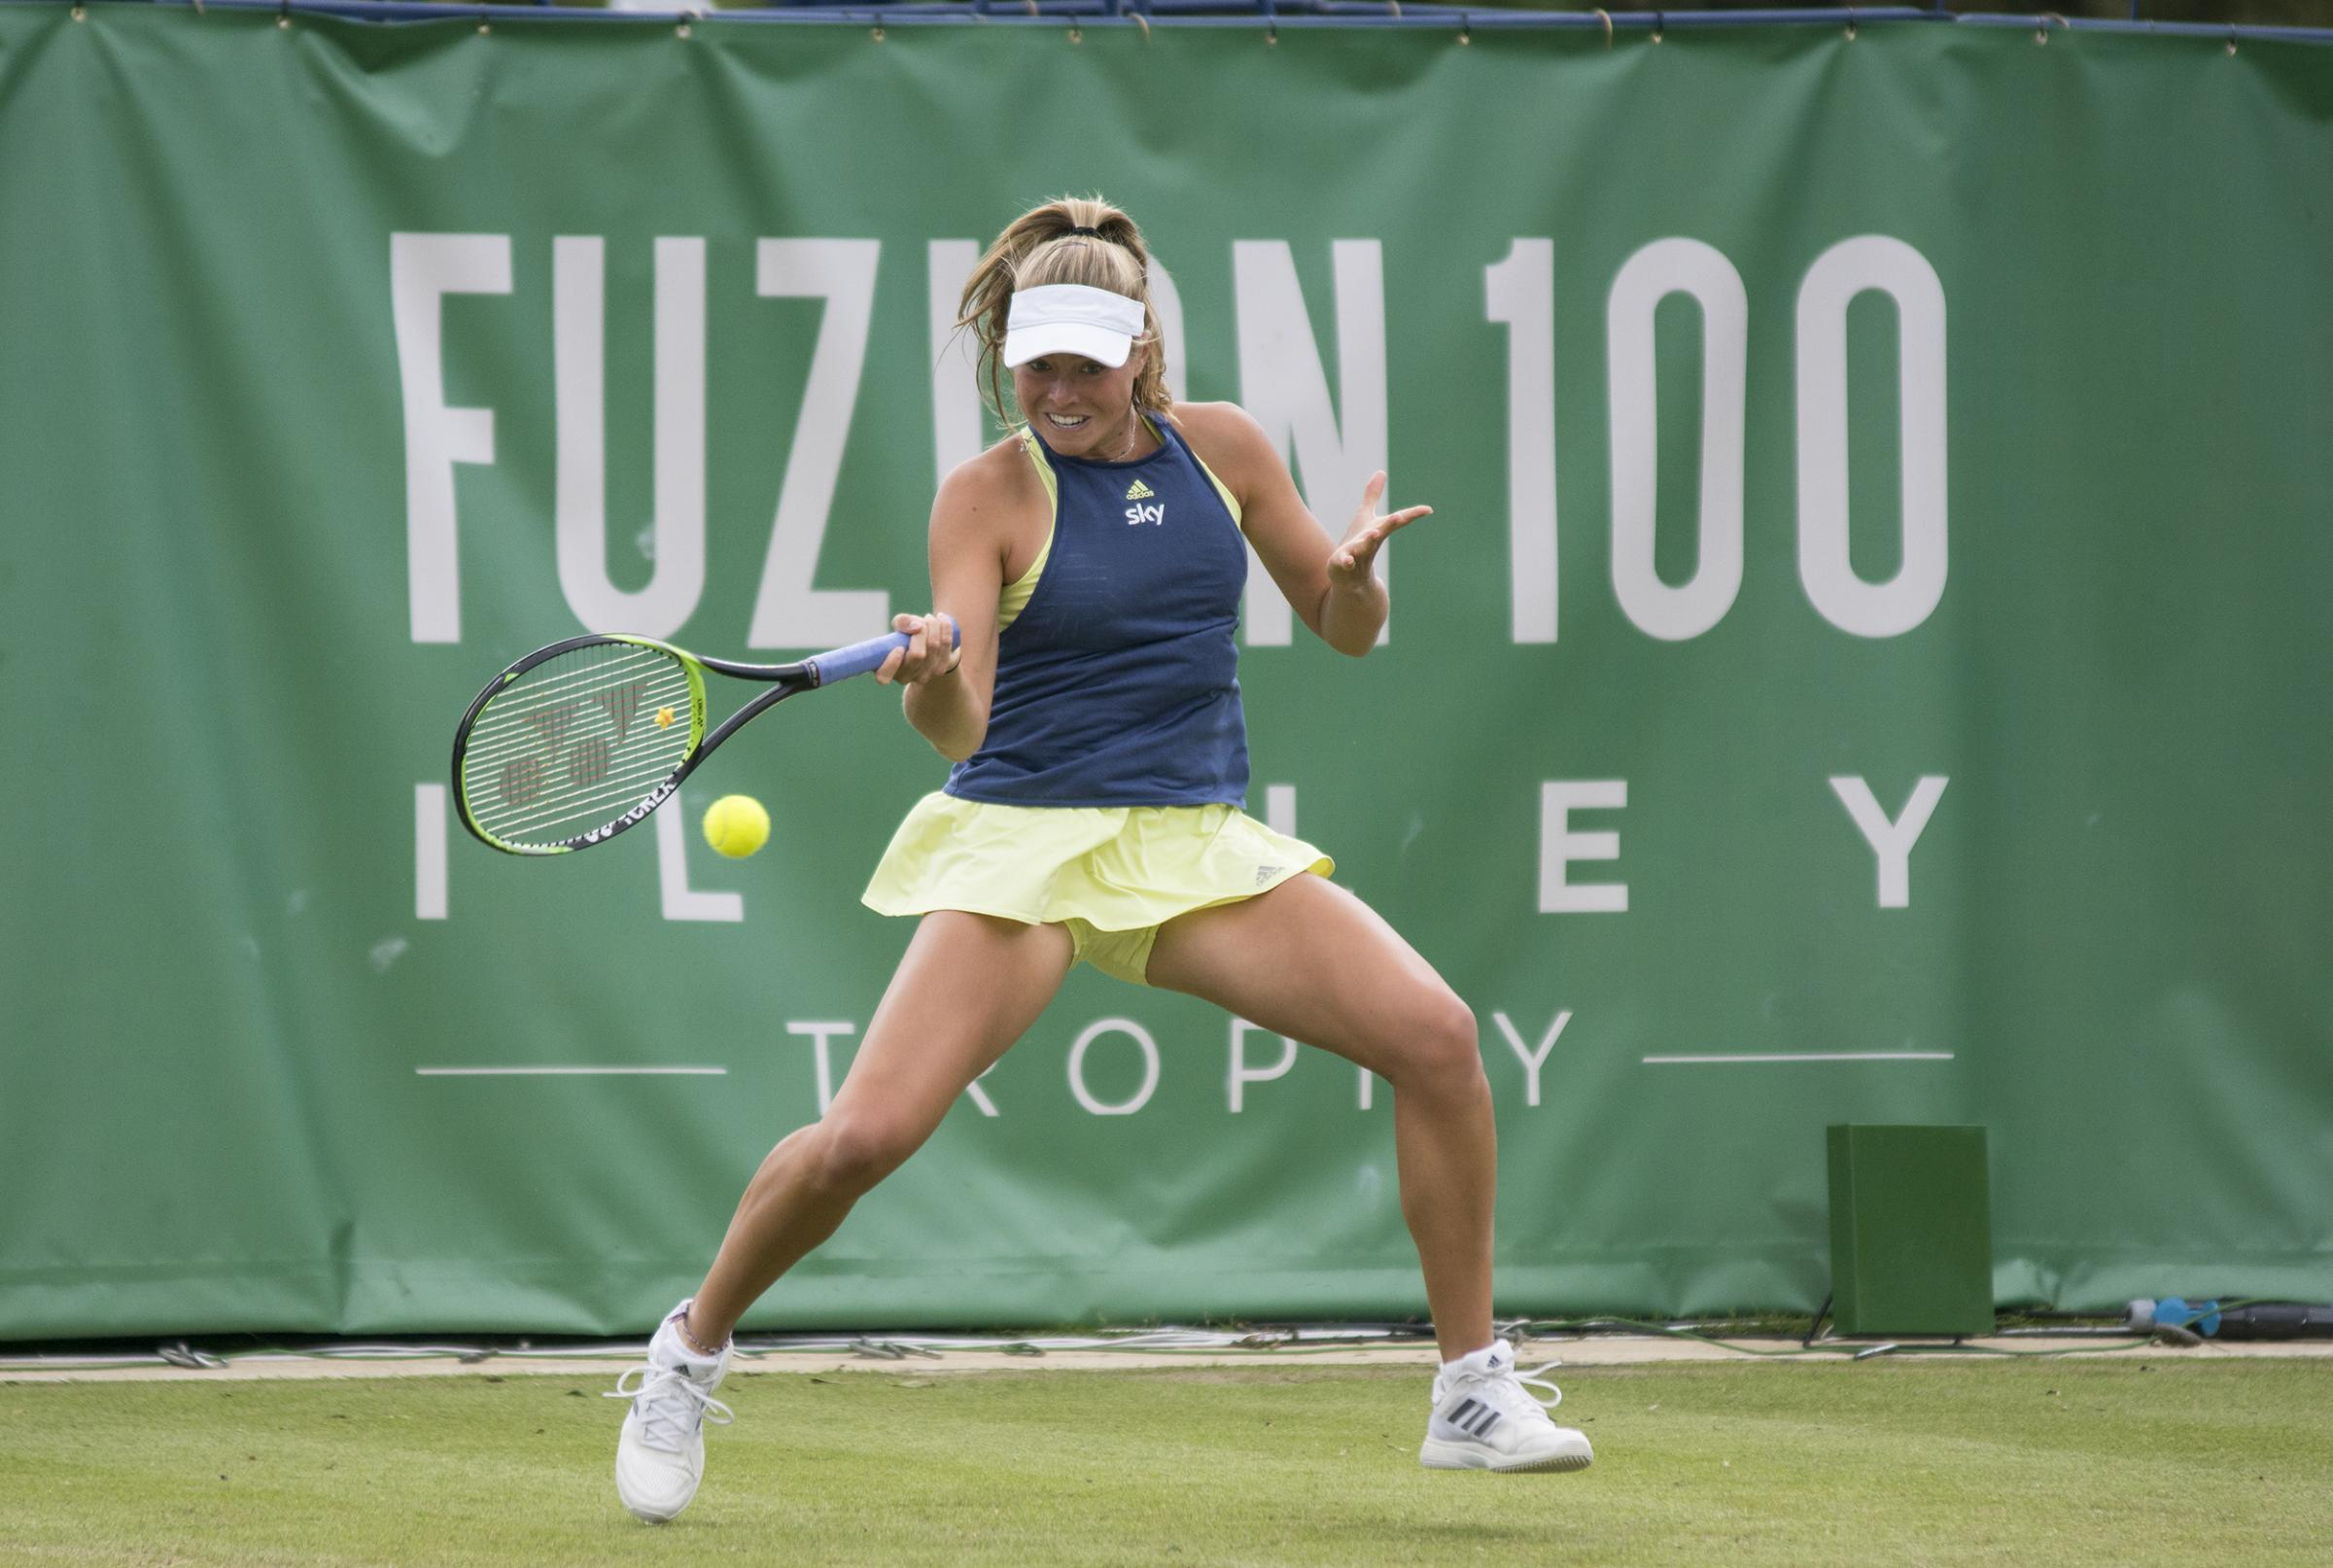 Emily Appleton in action at the Fuzion 100 Ilkley Trophy as she lost to Jaimee Fourlis from Australia  Picture: Ian Parker